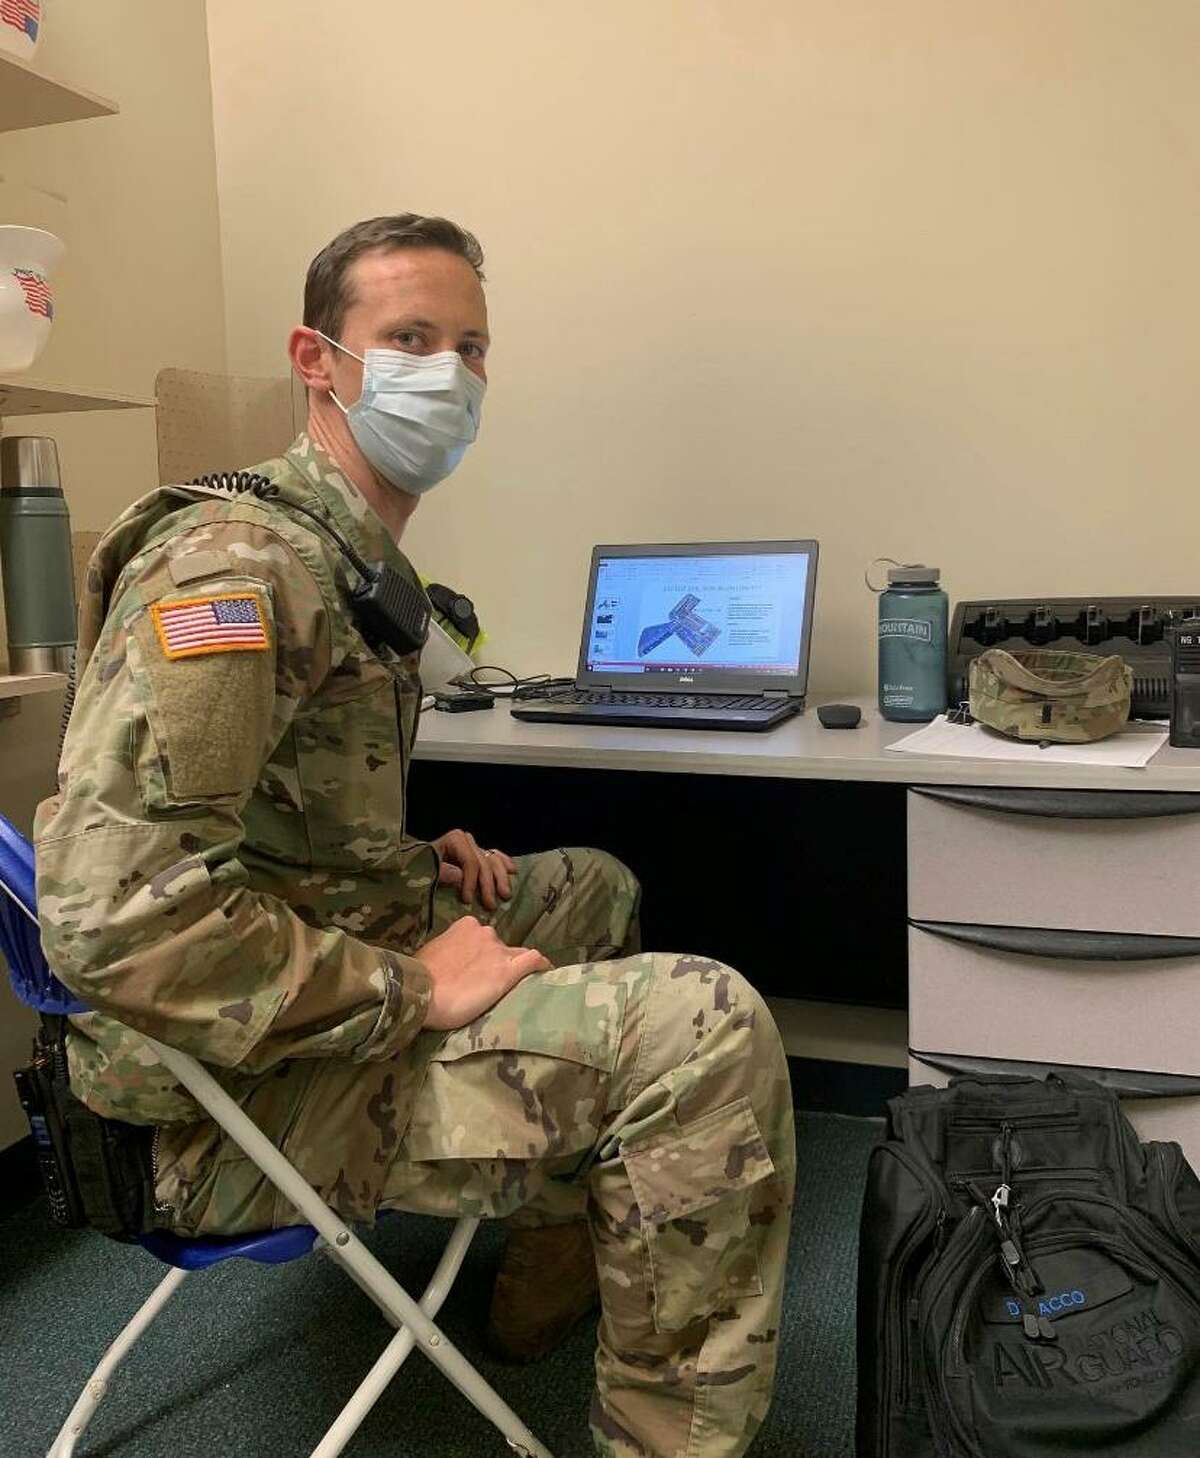 Westhill boys lacrosse coach Scott Stone is a 1st lieutenant with the 1-102nd Infantry of the Connecticut Army National Guard. In the photograph he is helping support the building of test sites and mobile hospitals during the pandemic. He is currently deployed in Africa.